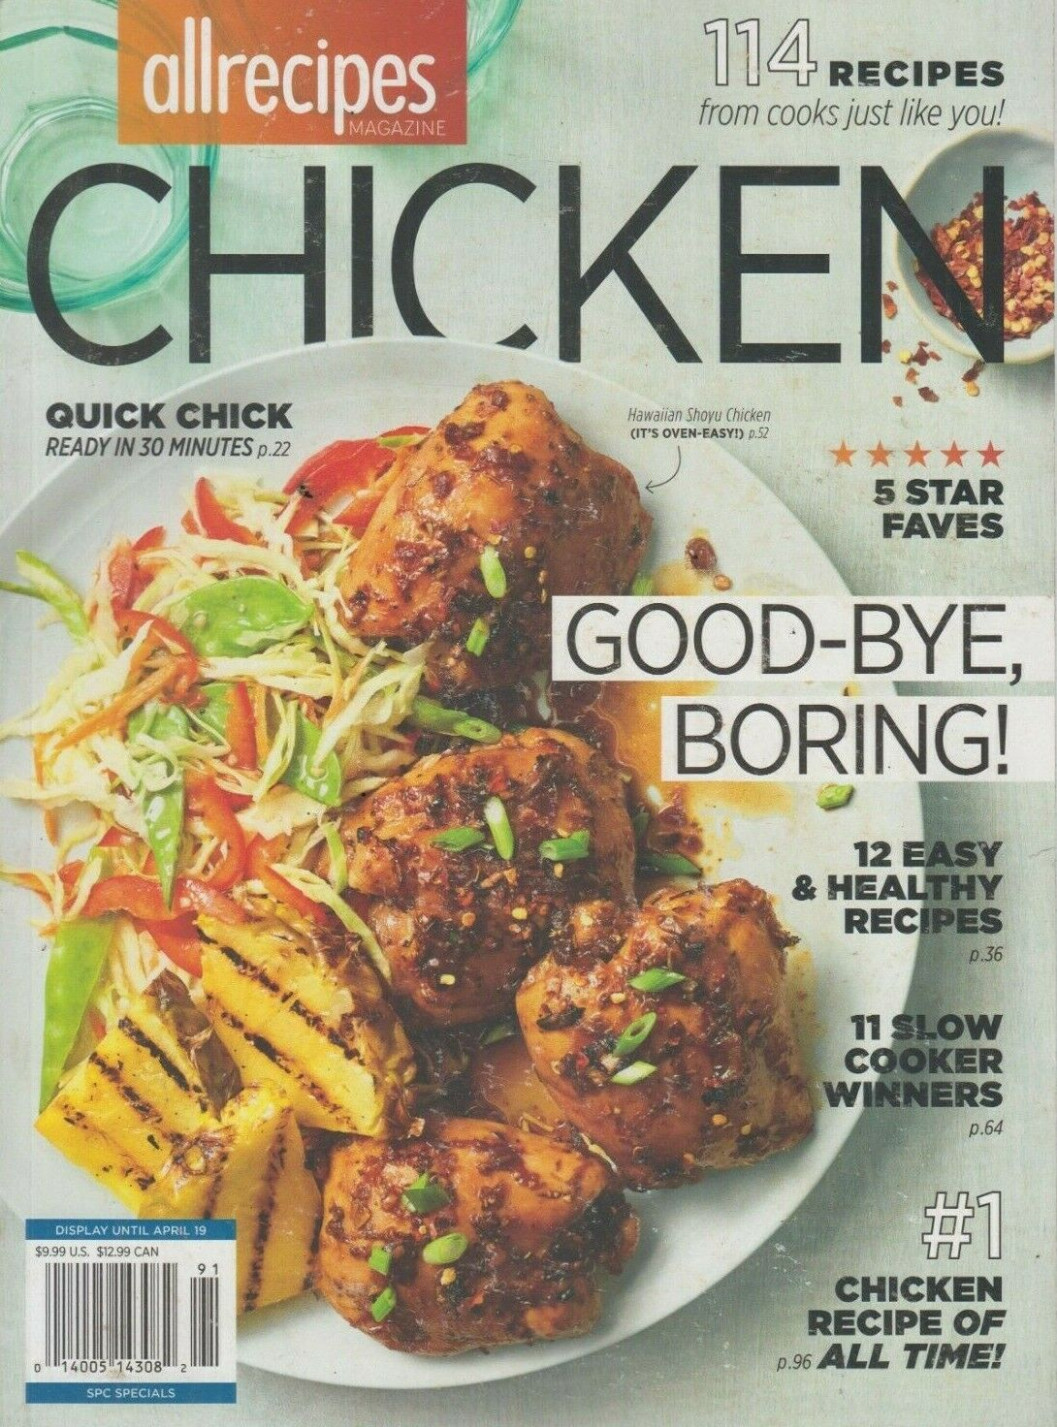 Allrecipes Magazine CHICKEN 14 Recipes/Easy & Healthy - healthy recipes allrecipes